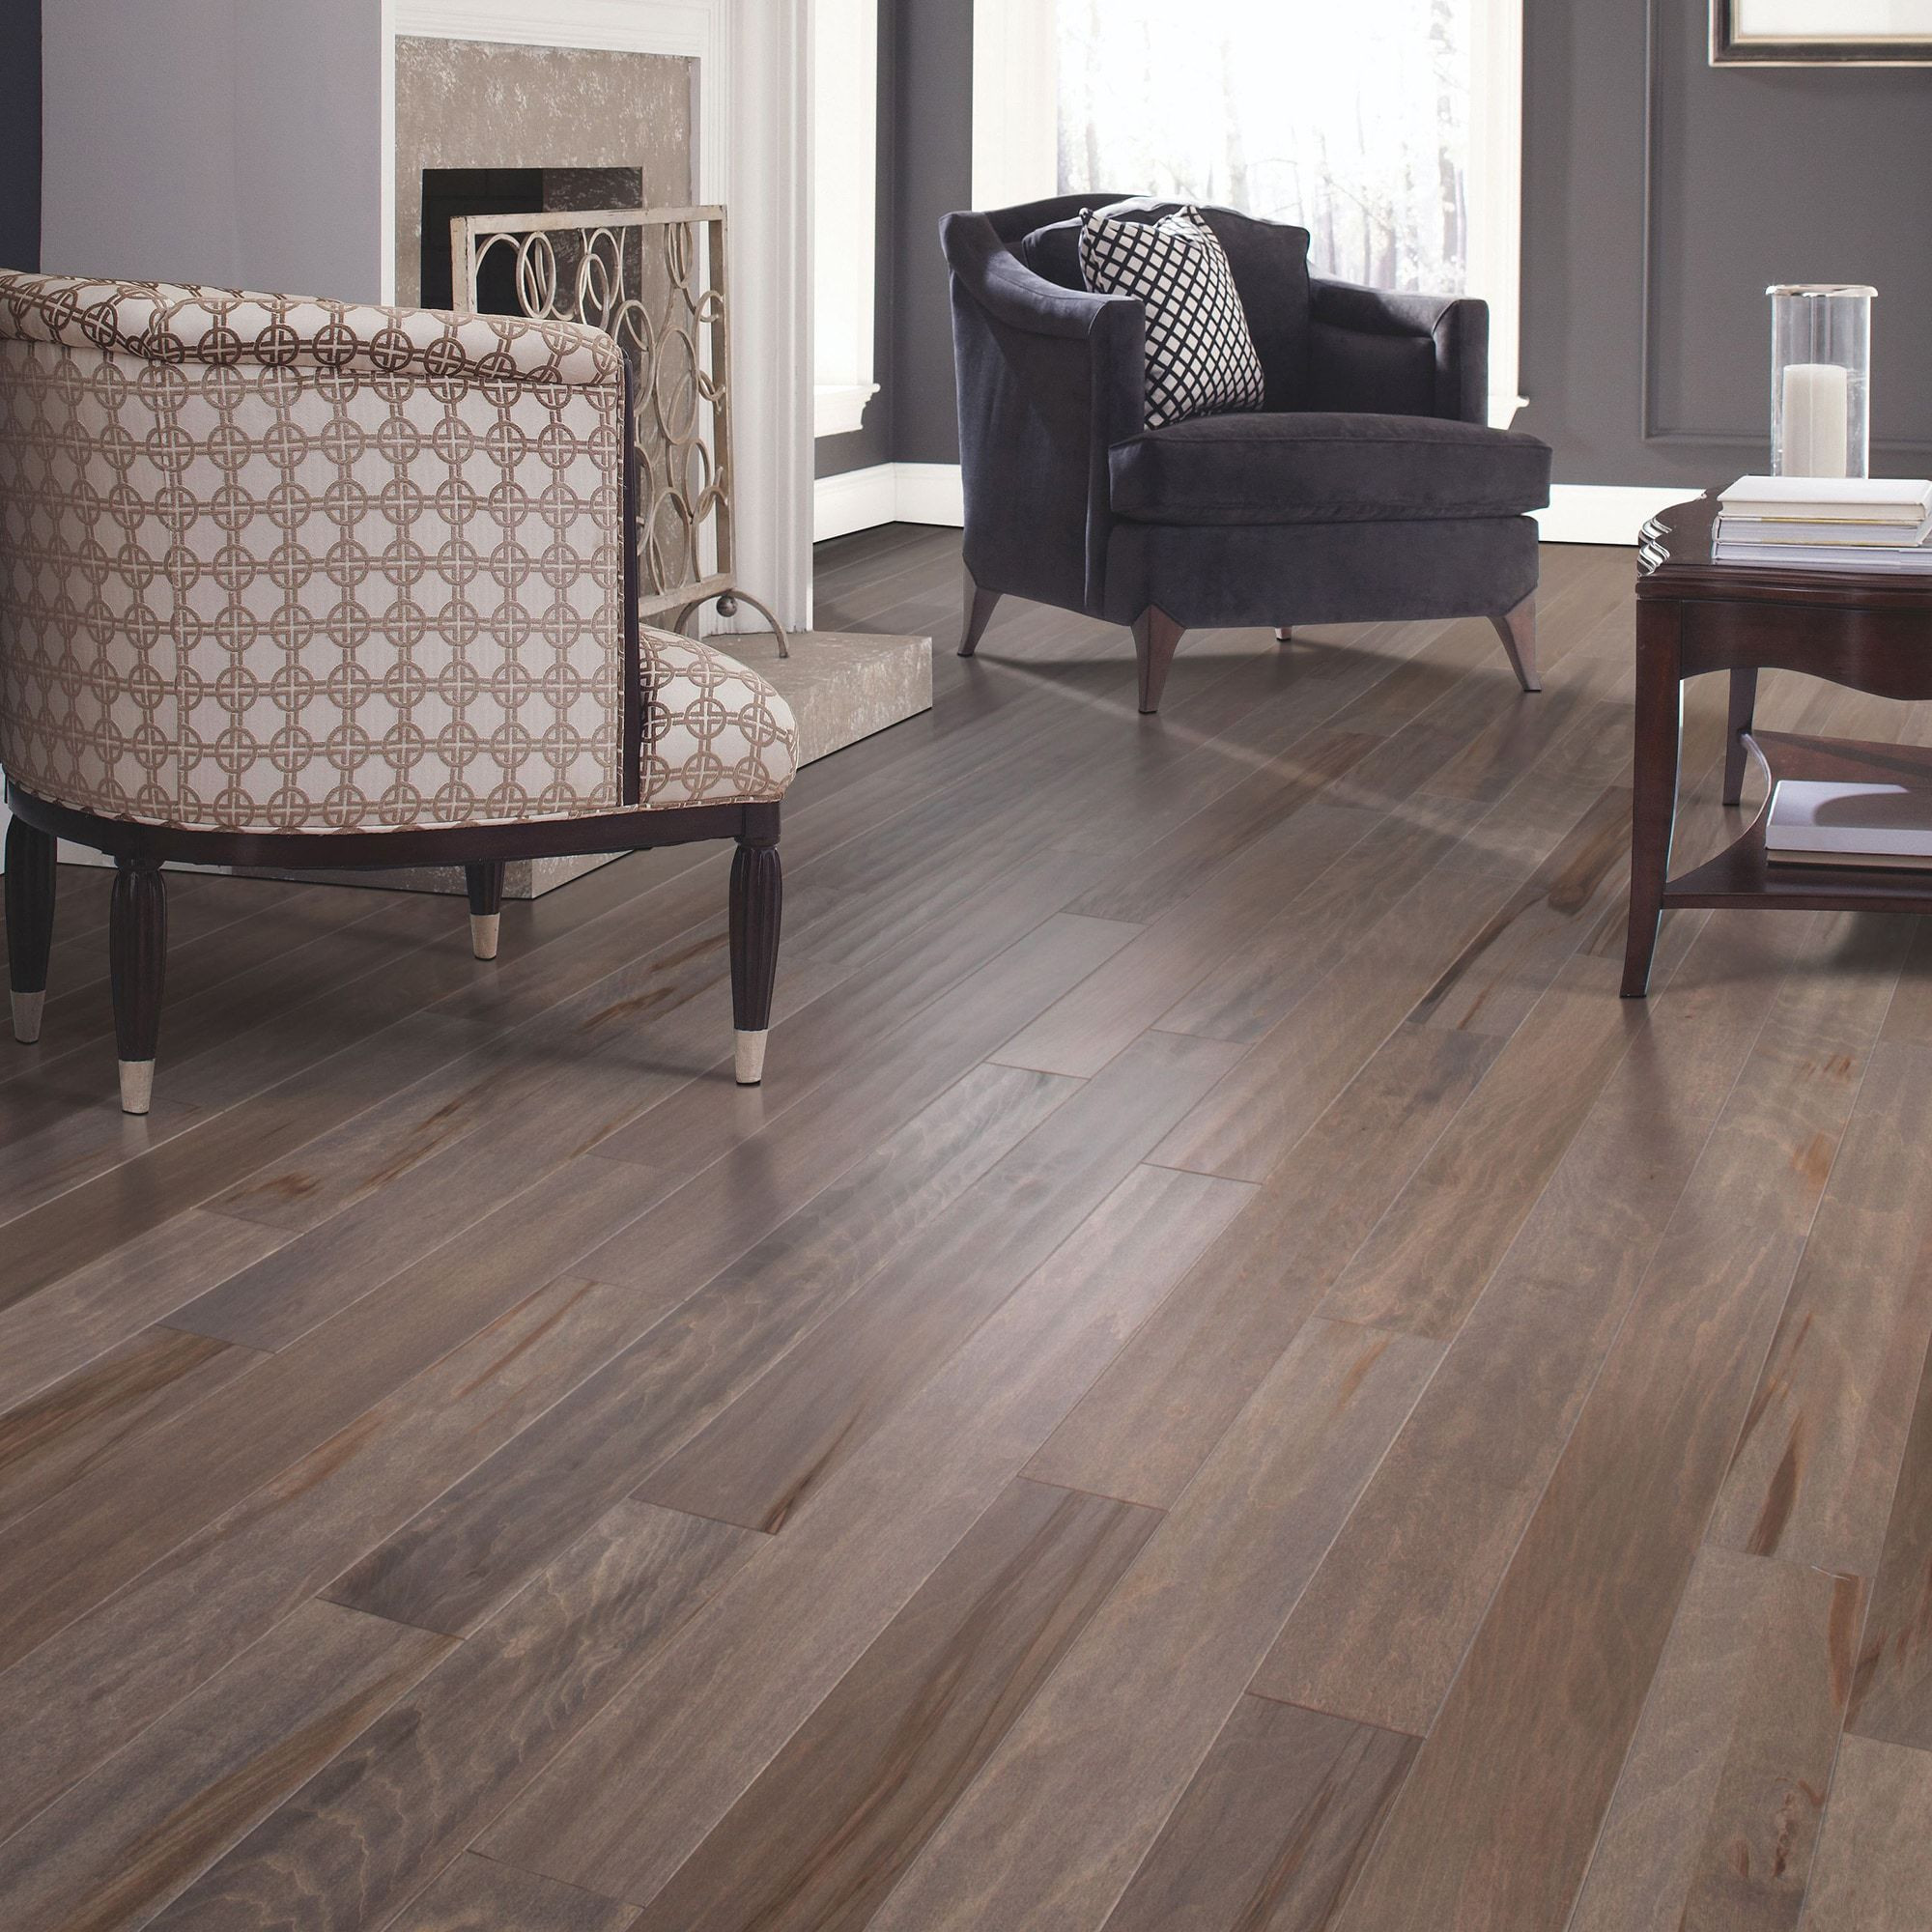 3 4 Maple Hardwood Flooring Of Builddirecta Mohawk Flooring Engineered Hardwood Ageless Allure Intended for Builddirecta Mohawk Flooring Engineered Hardwood Ageless Allure Collection